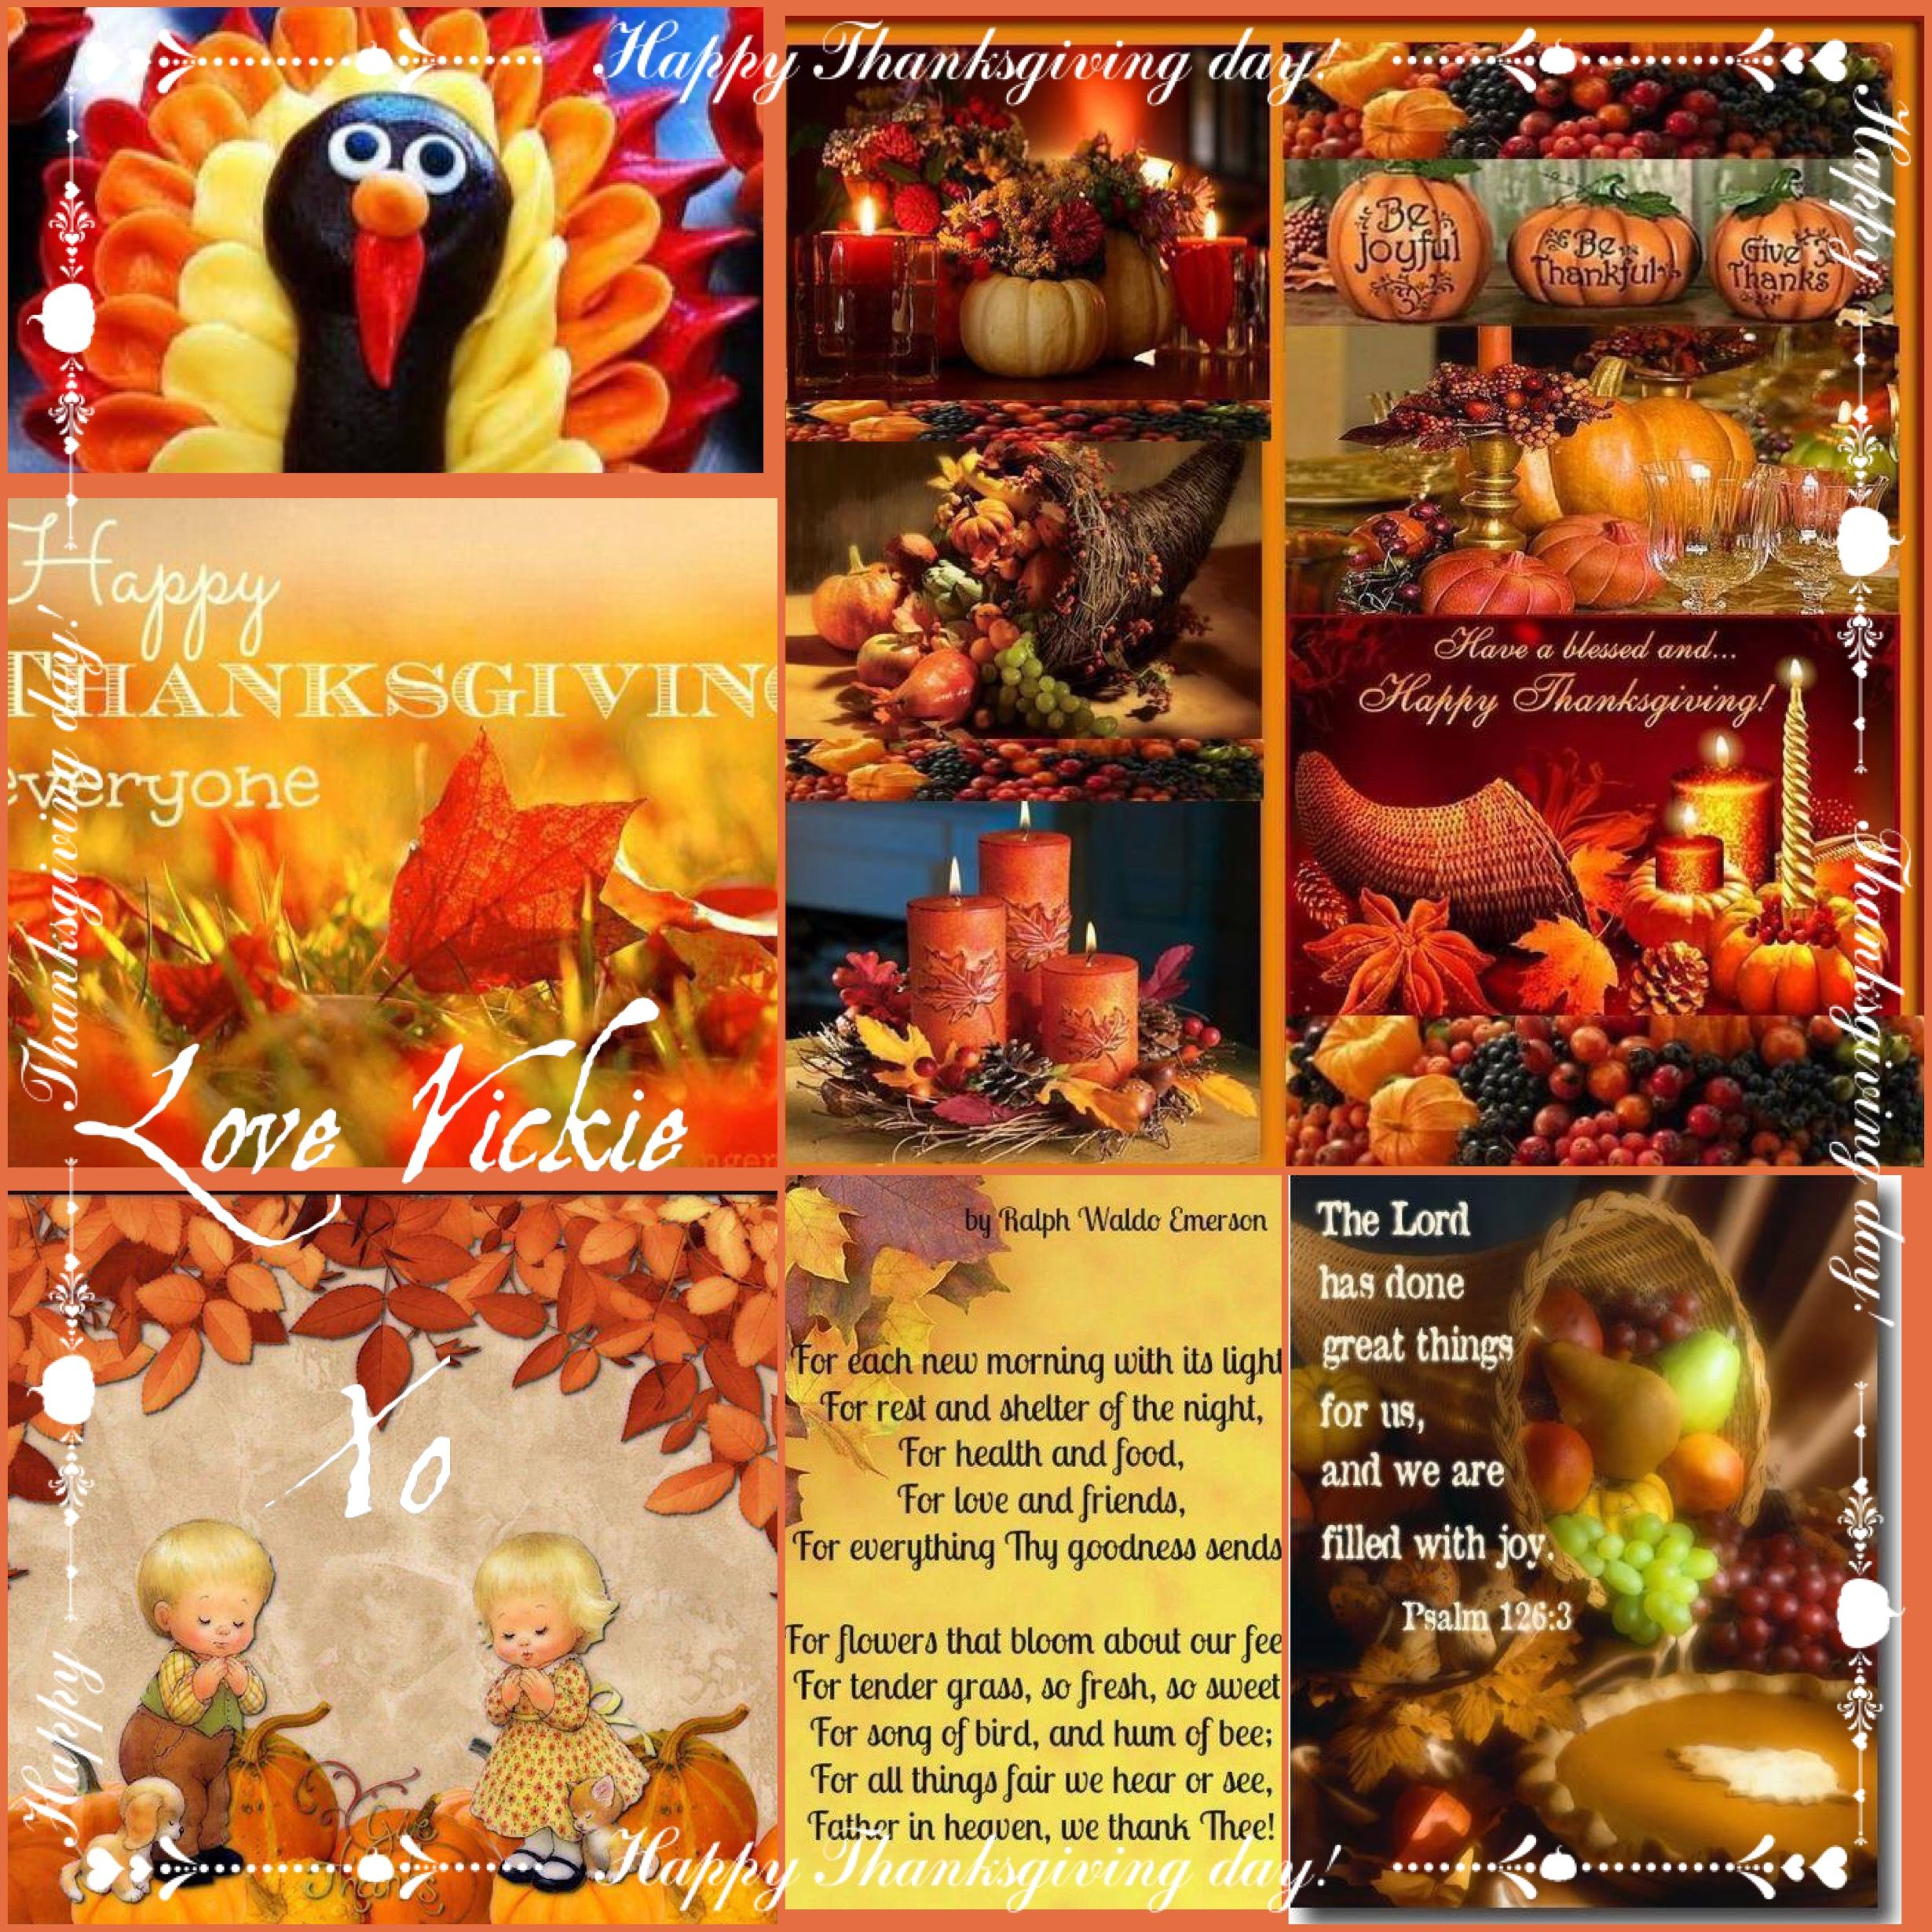 Happy Thanksgiving My Sweet Angel Sisters I Have Been Busy Readying